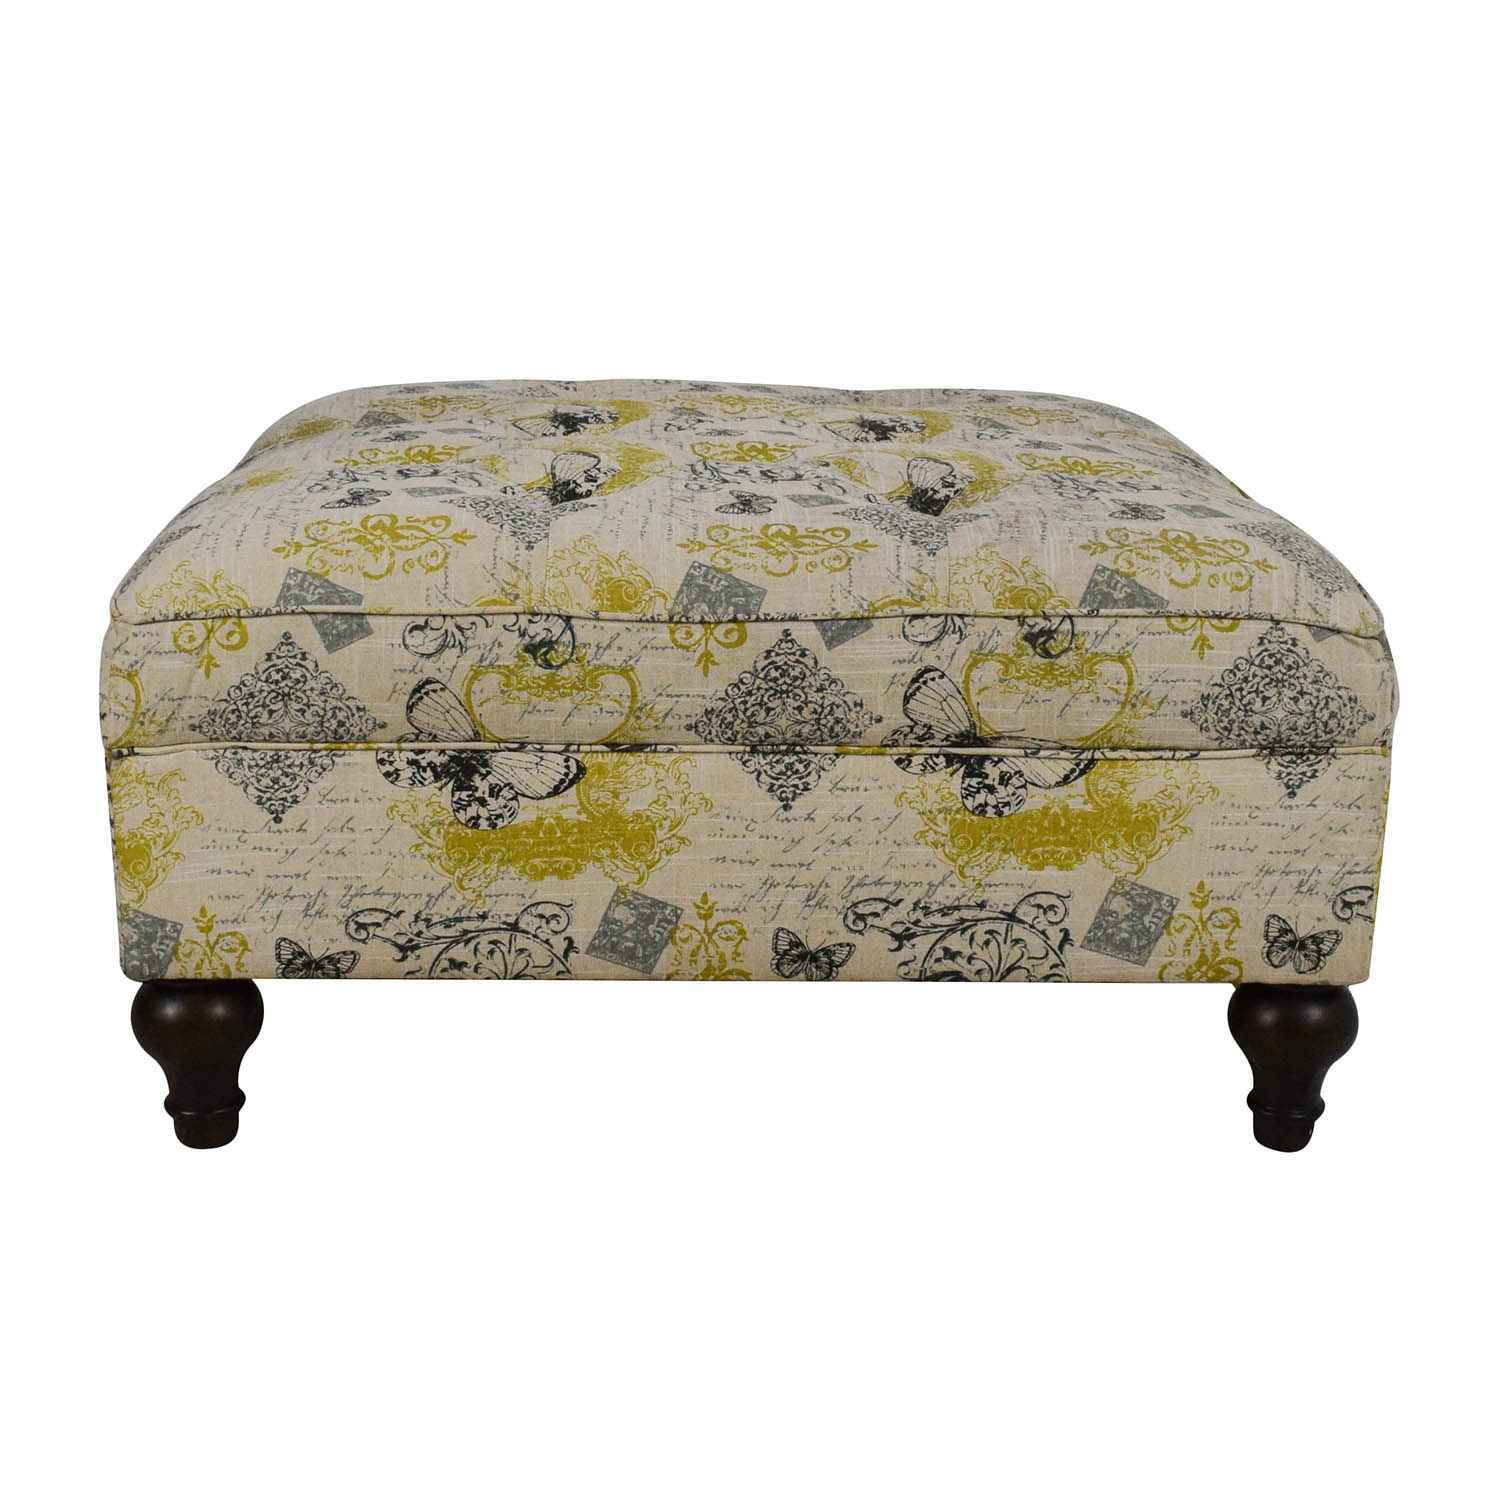 Hindell Park Coffee Table.87 Off Ashley Furniture Ashley Furniture Hindell Park Ottoman Storage